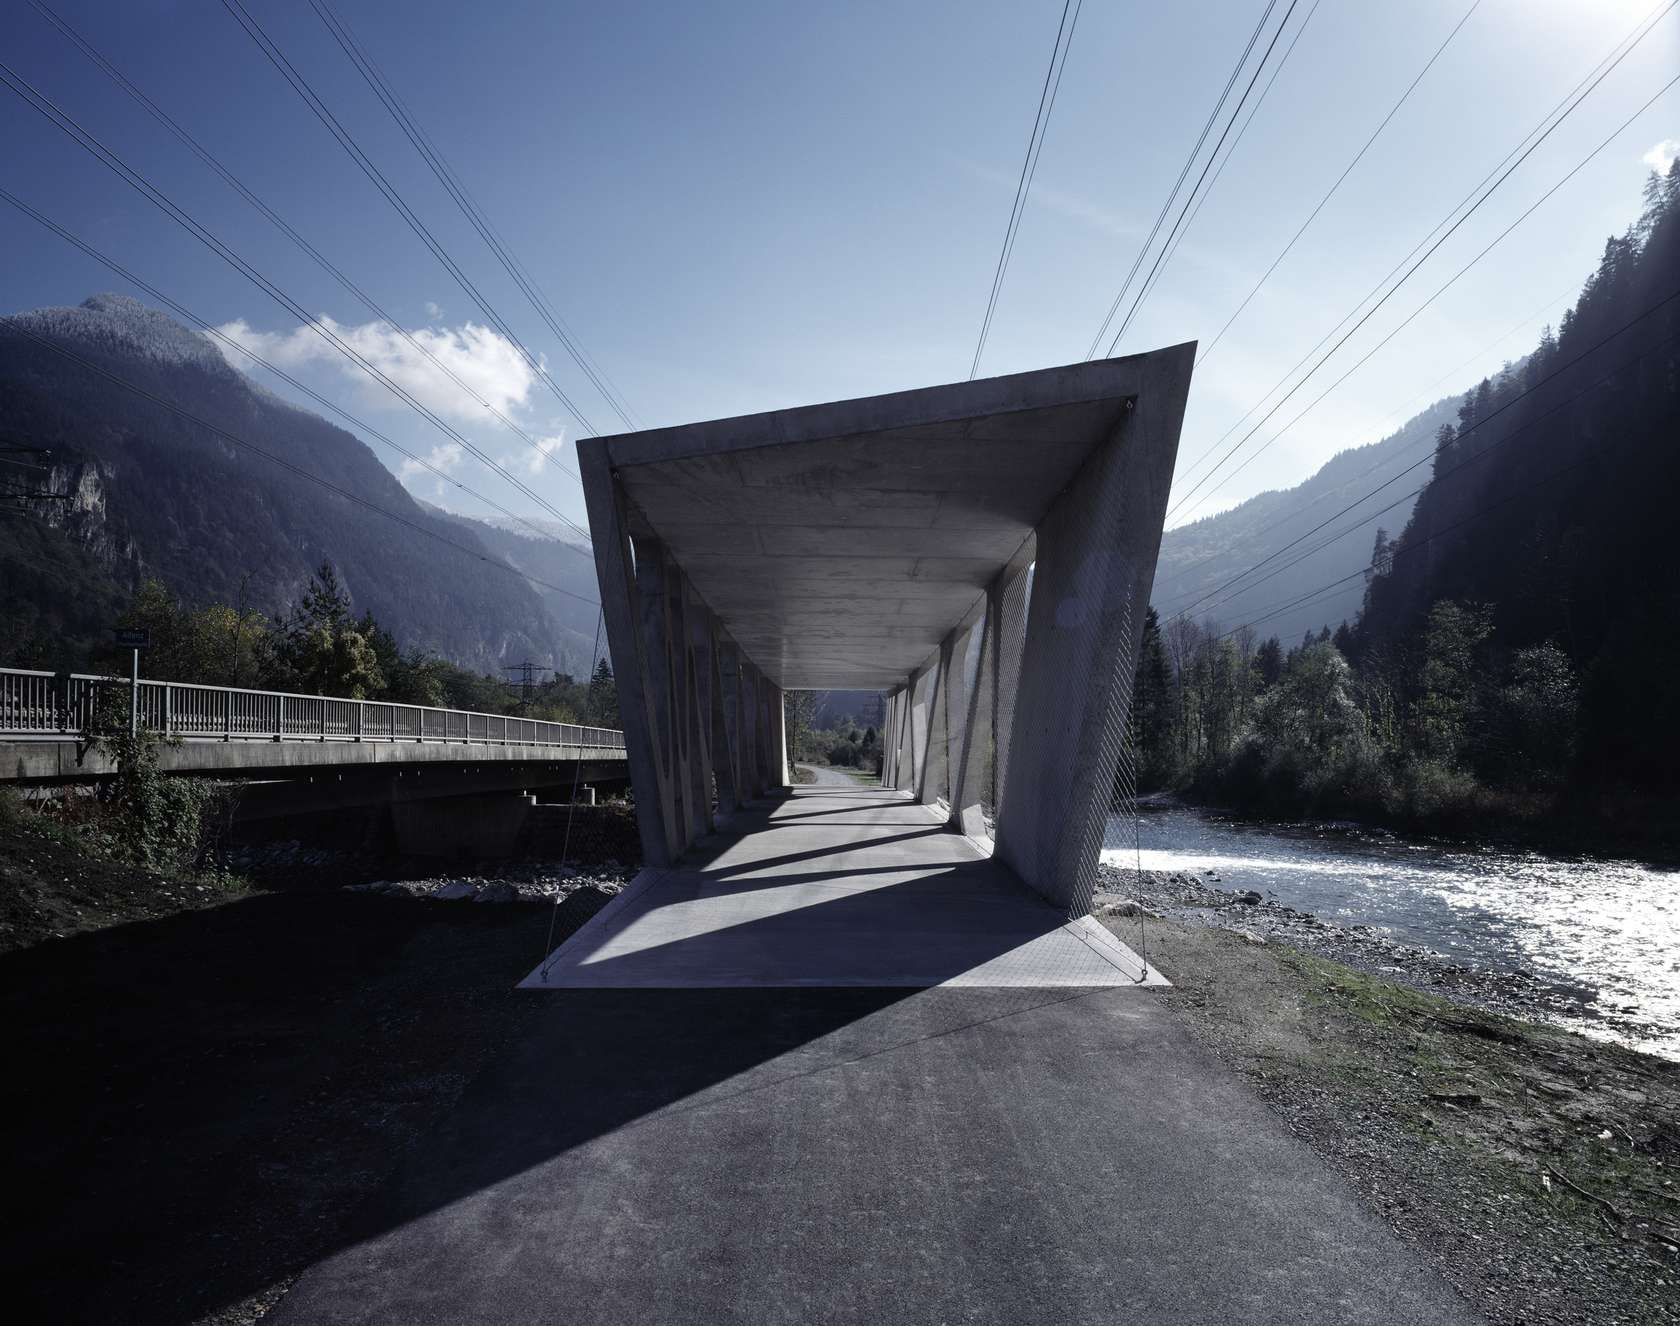 8 Bridges That Leave Behind the Familiar